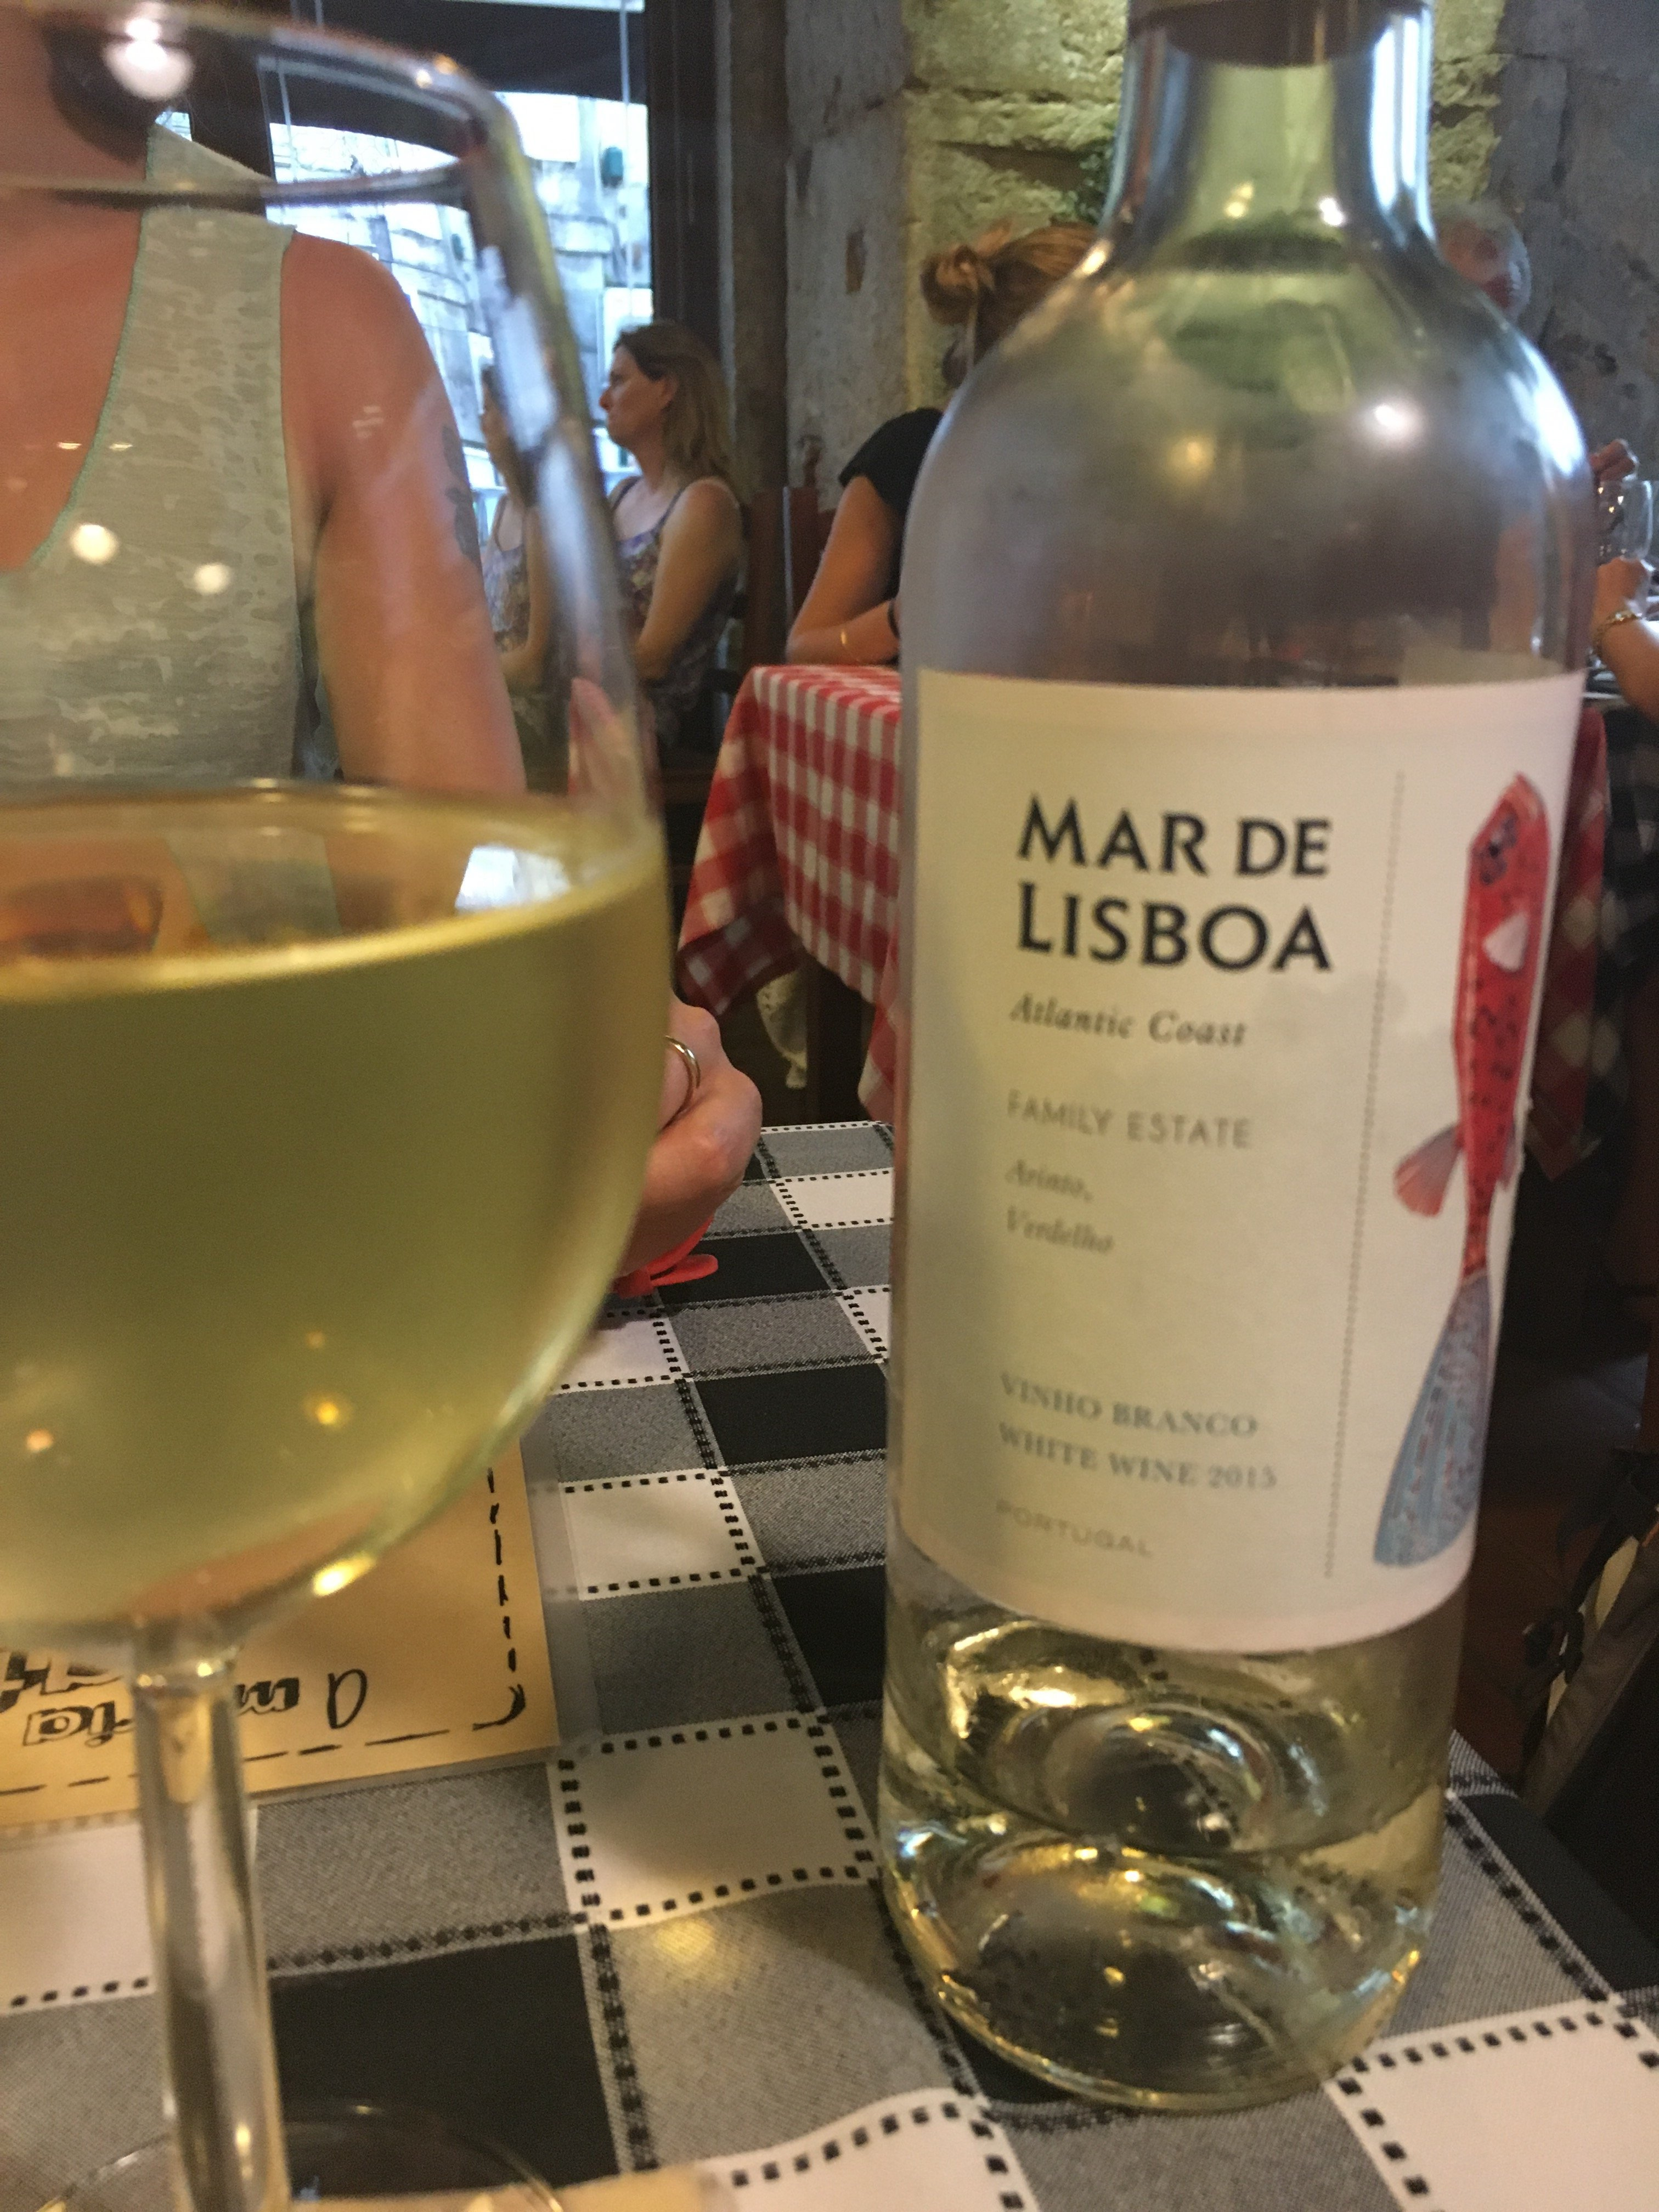 Mar de Lisboa white wine